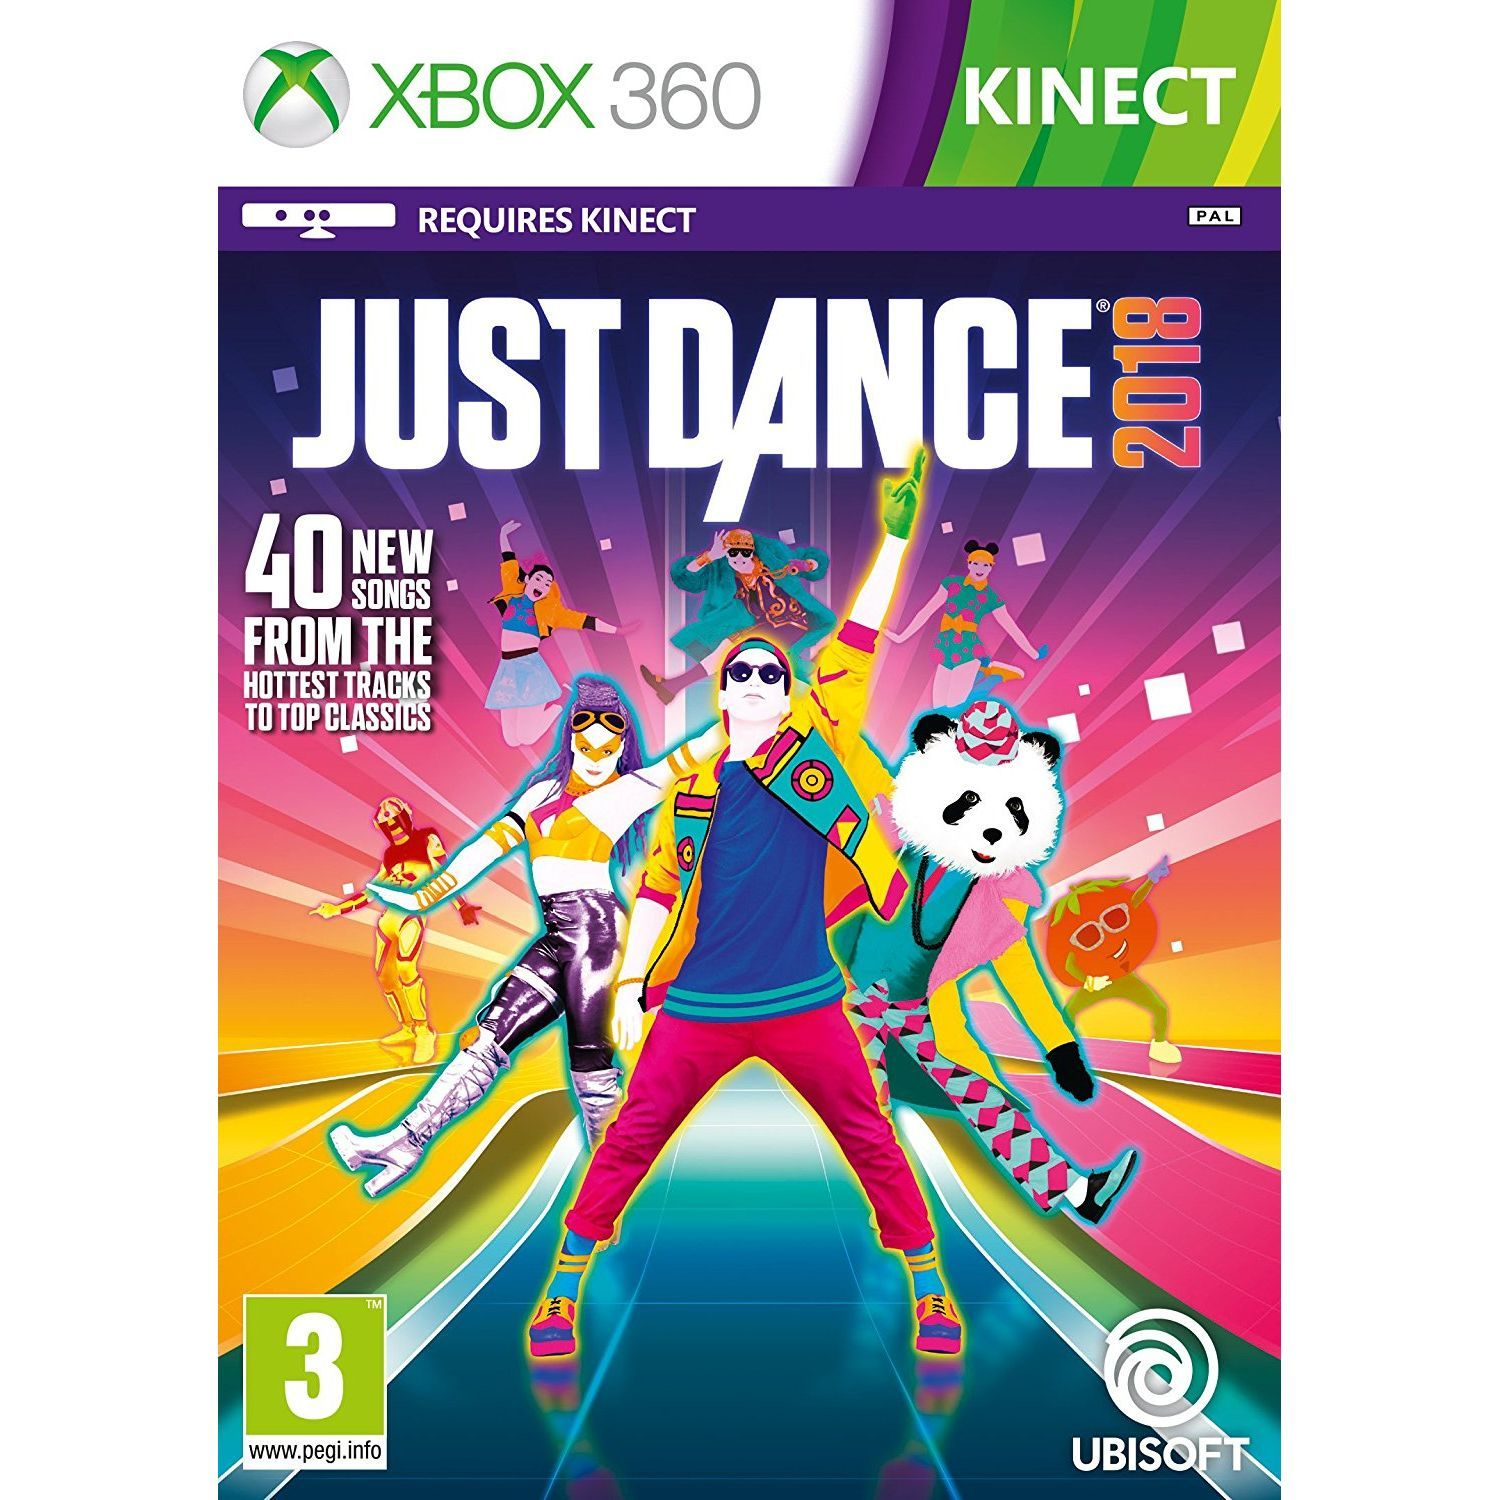 Just Dance Game For Xbox 360 : Just dance xbox hd shop gr